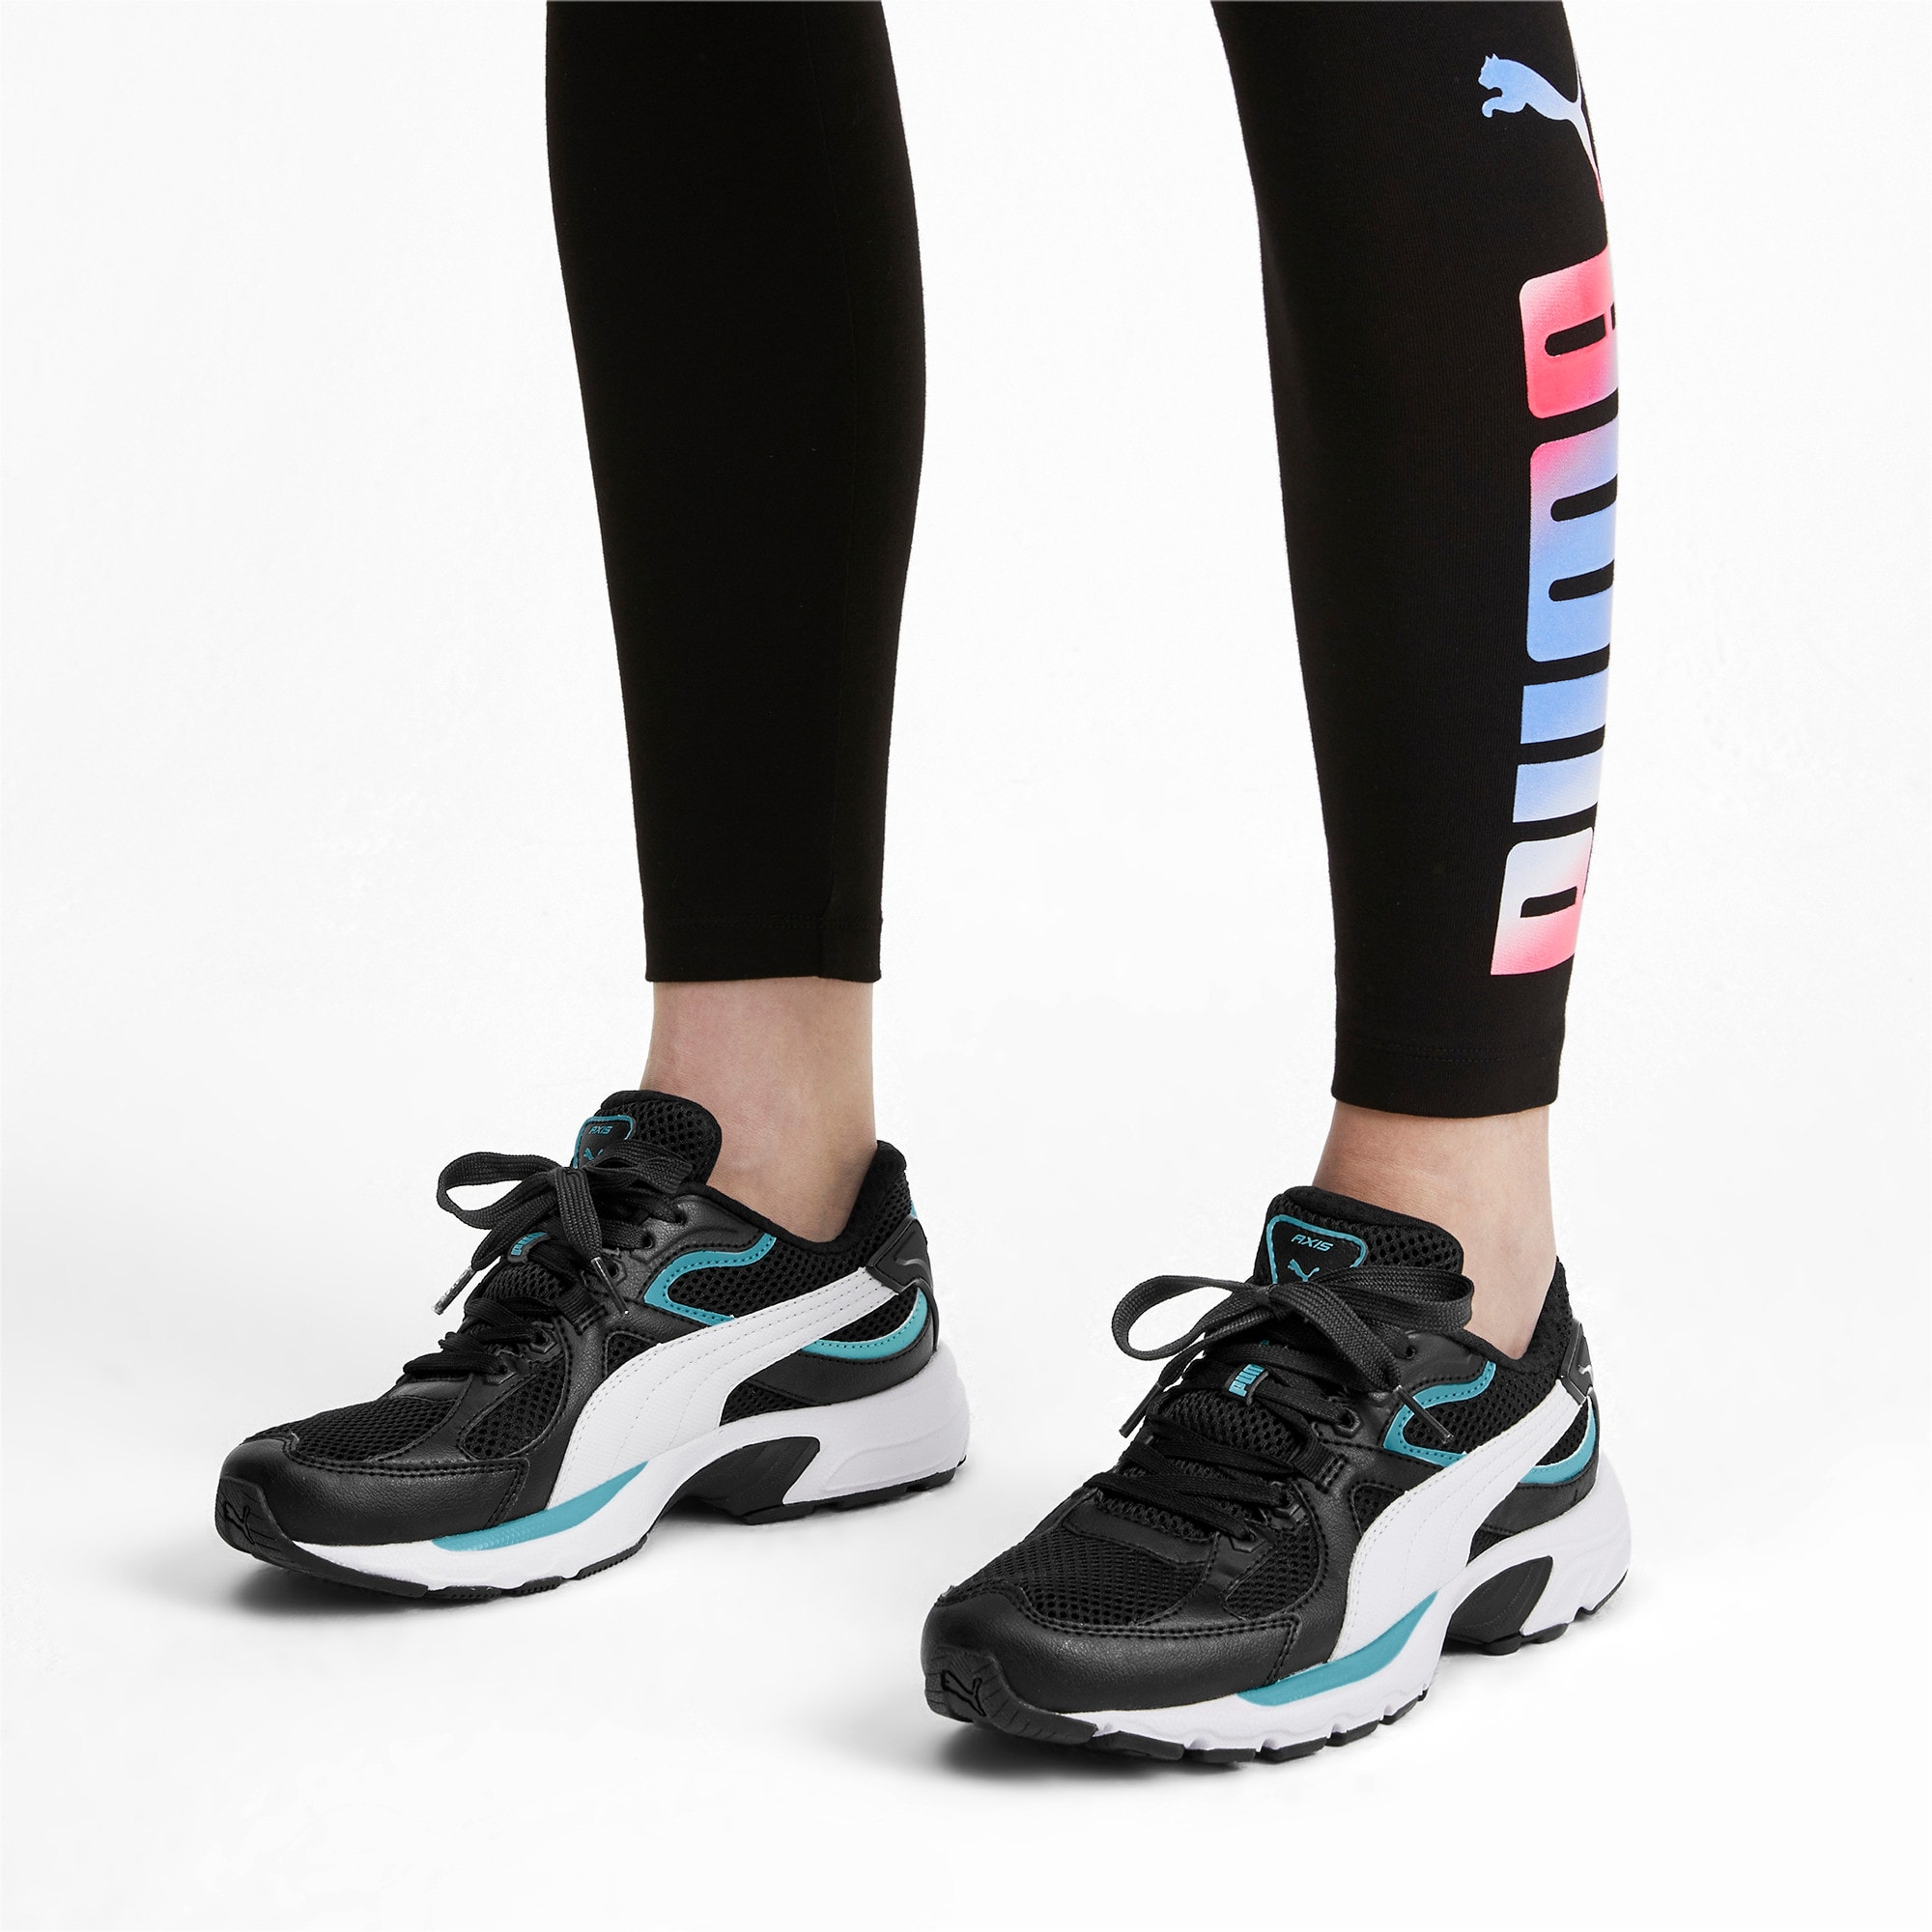 Thumbnail 3 of Axis Plus 90s Trainers, Puma Black-White-Milky Blue, medium-IND